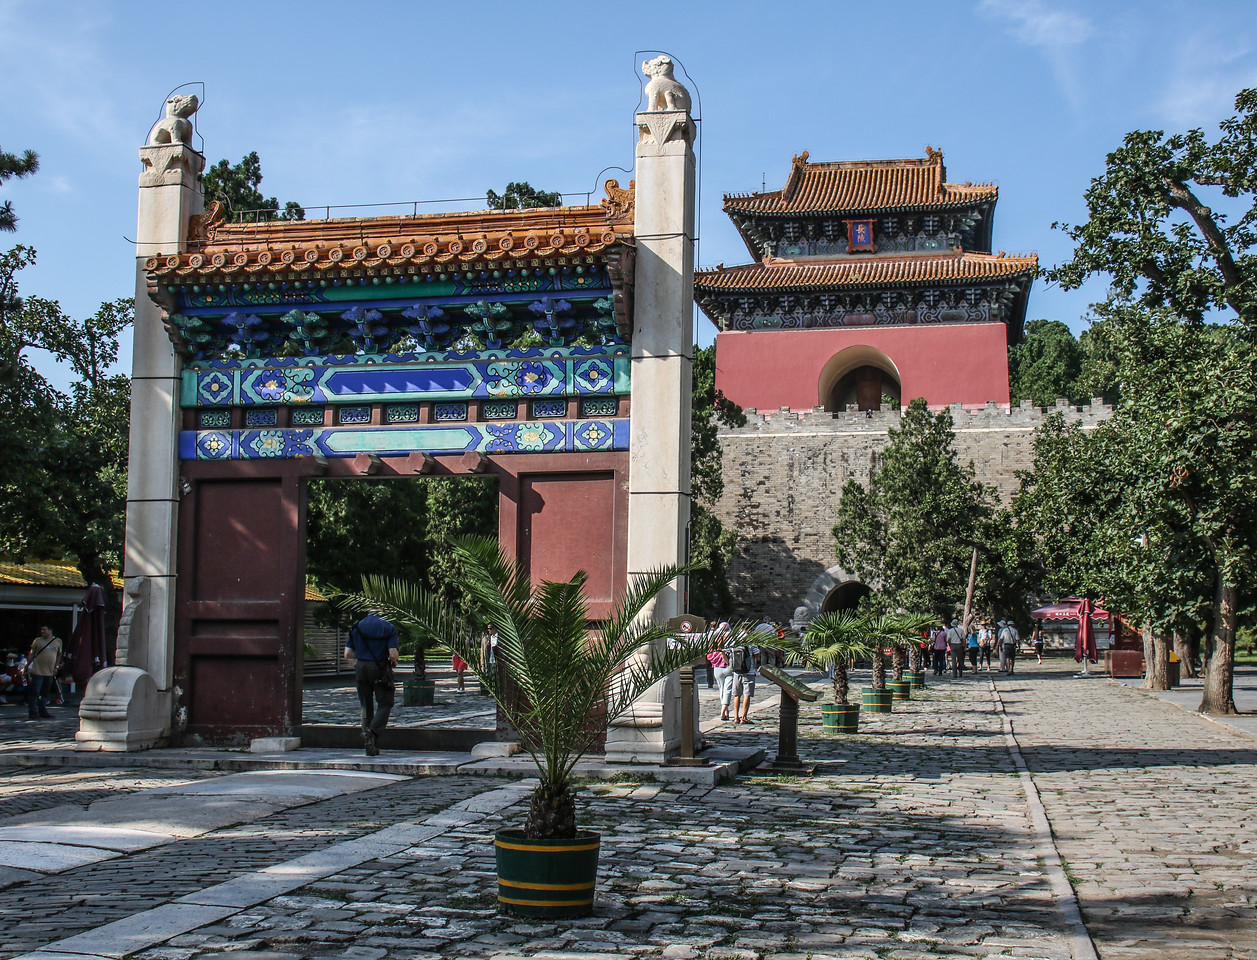 The Ming Dynasty Tombs (14-17C)